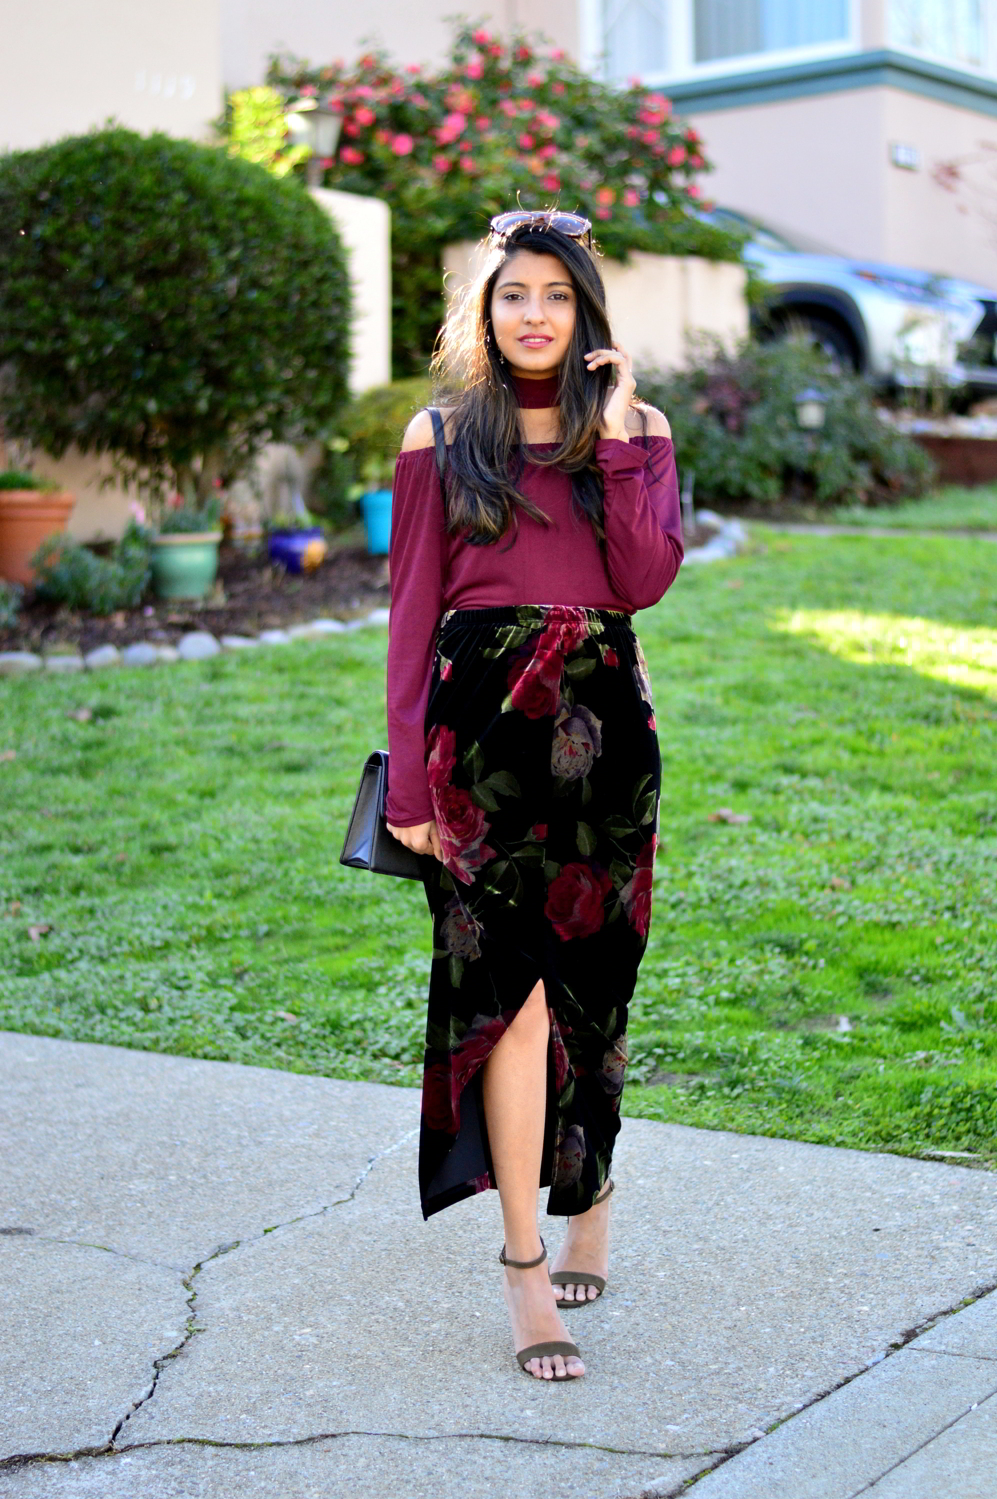 velvet-floral-skirt-choker-burgundy-top-party-outfit-NYE-blogger 7